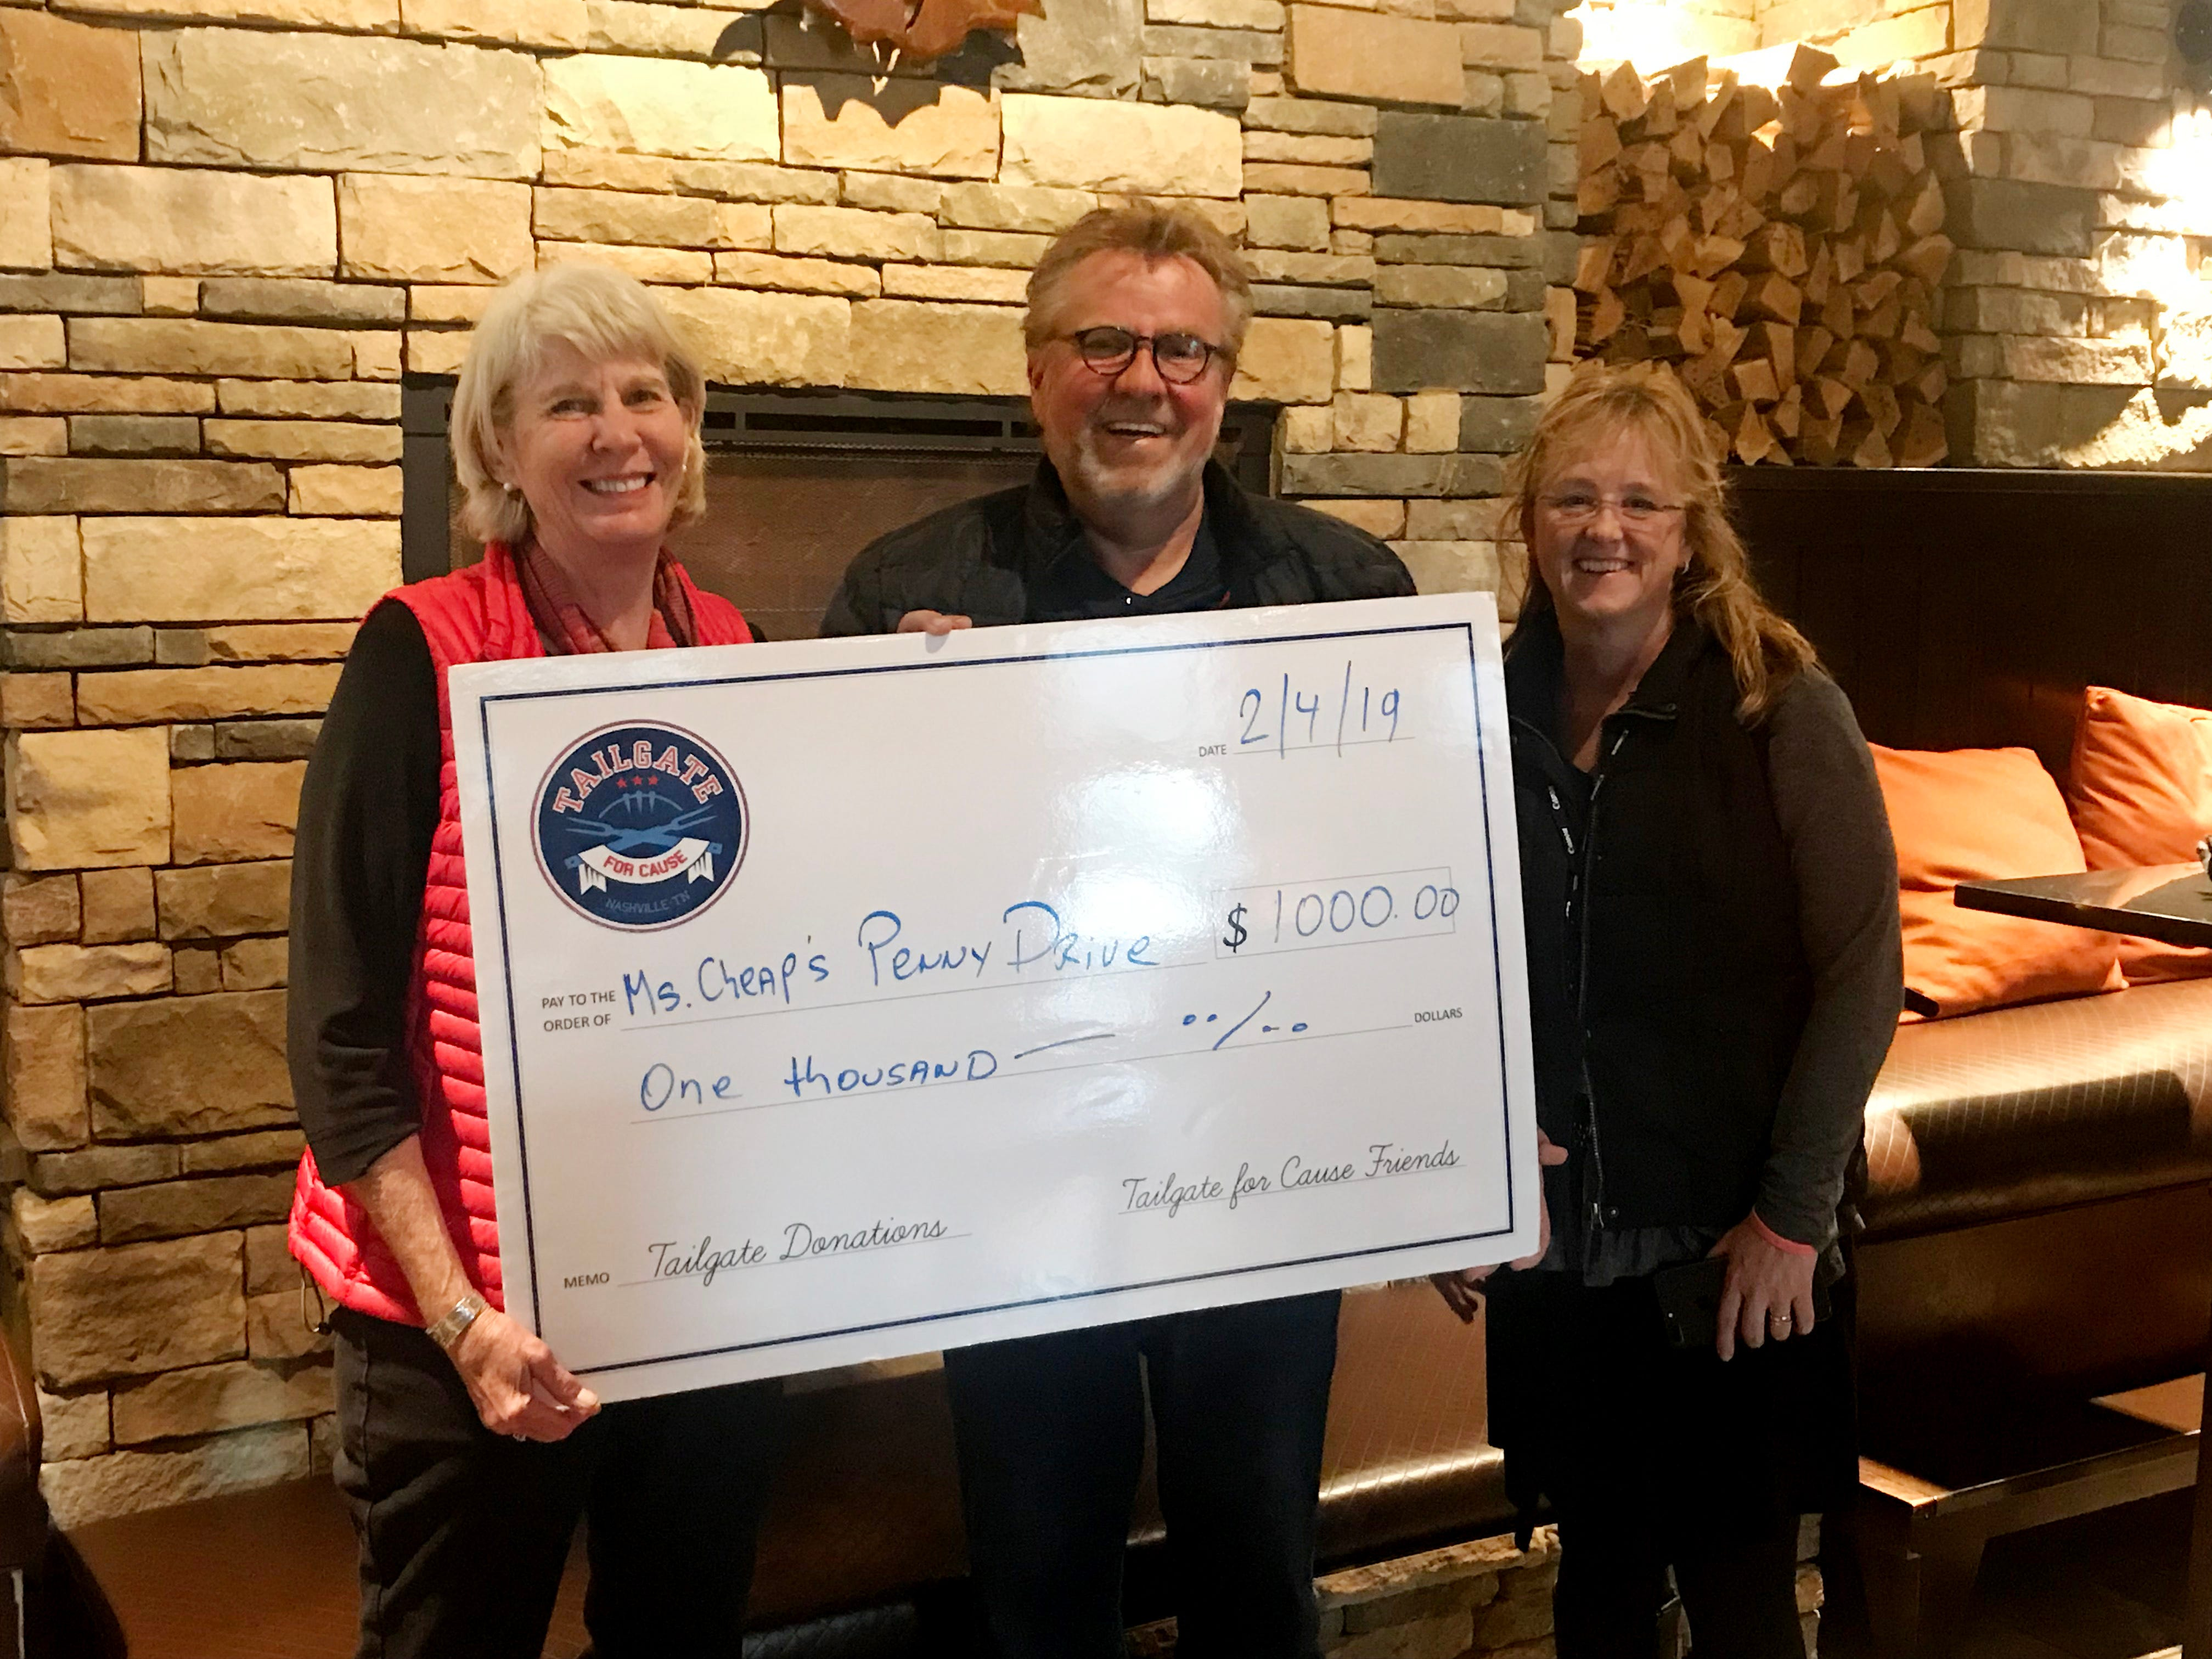 Tailgate for Cause founder Michael Gangwisch and V. Alexander's Claudia Richardson present a big check to Ms. Cheap.